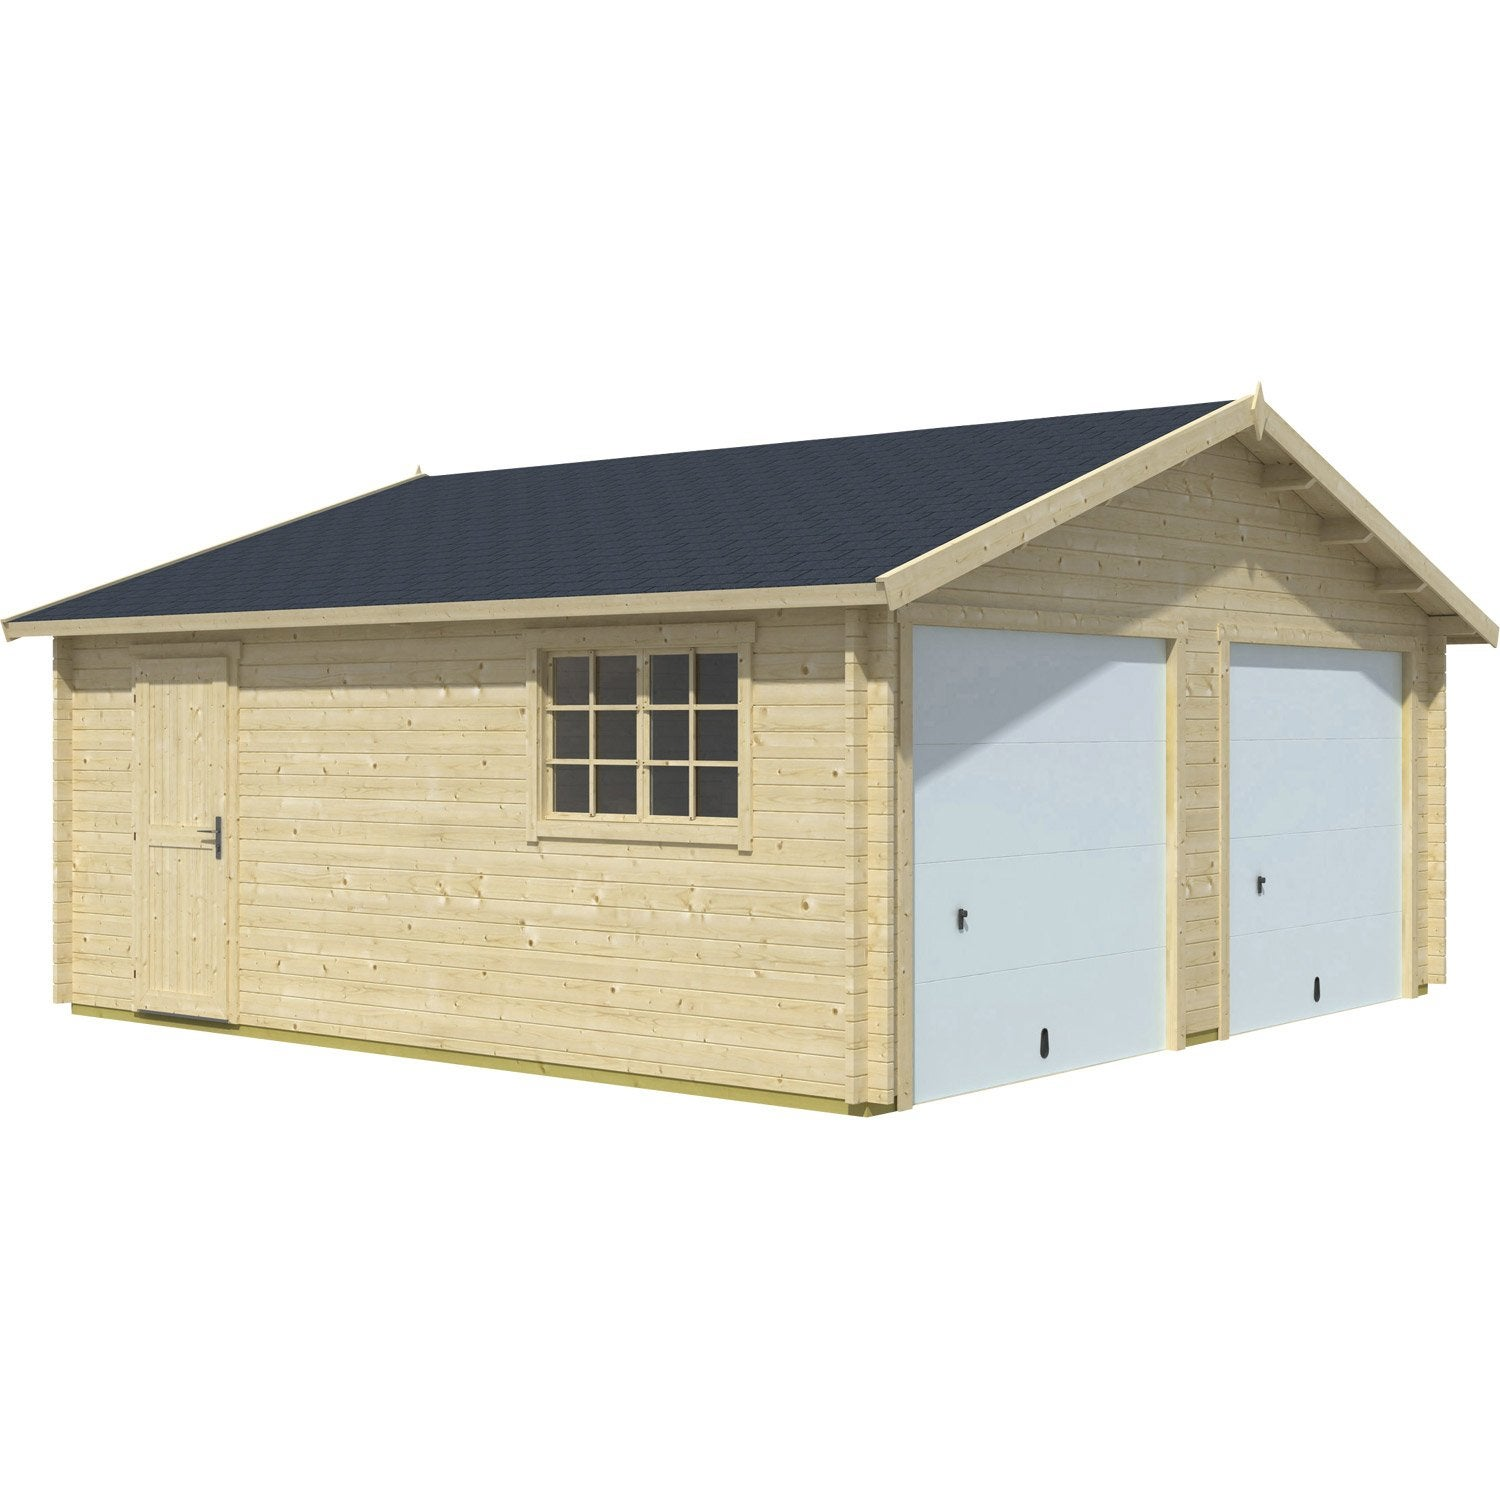 Garage en bois ba kal so garden m leroy merlin - Garage bois en kit leroy merlin ...